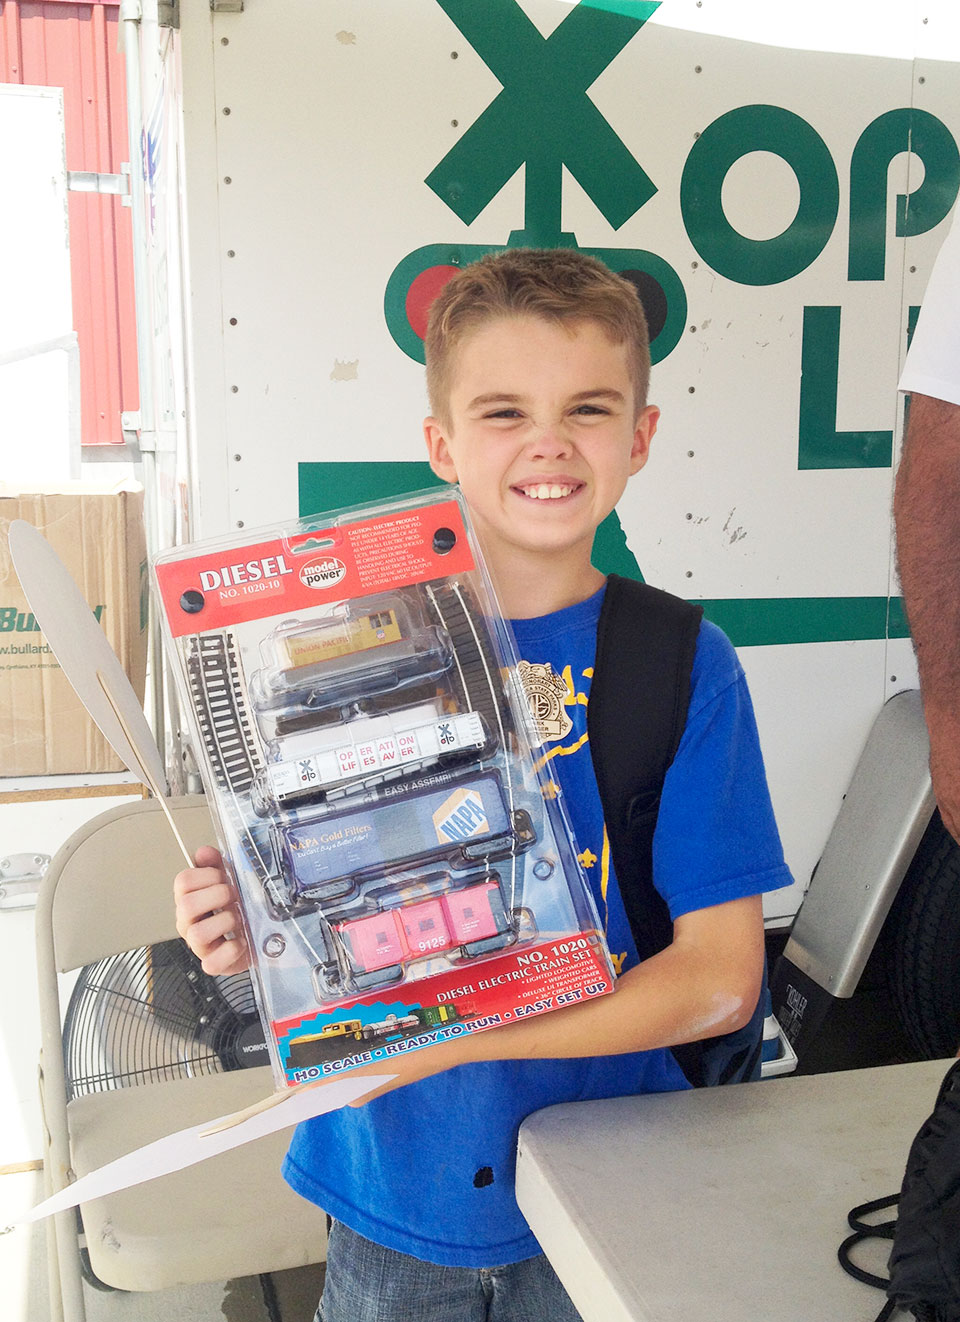 Operation_Lifesaver_NE_State_Fair_Winner_Colin_KEnnedy_from_Aurora_NE2_